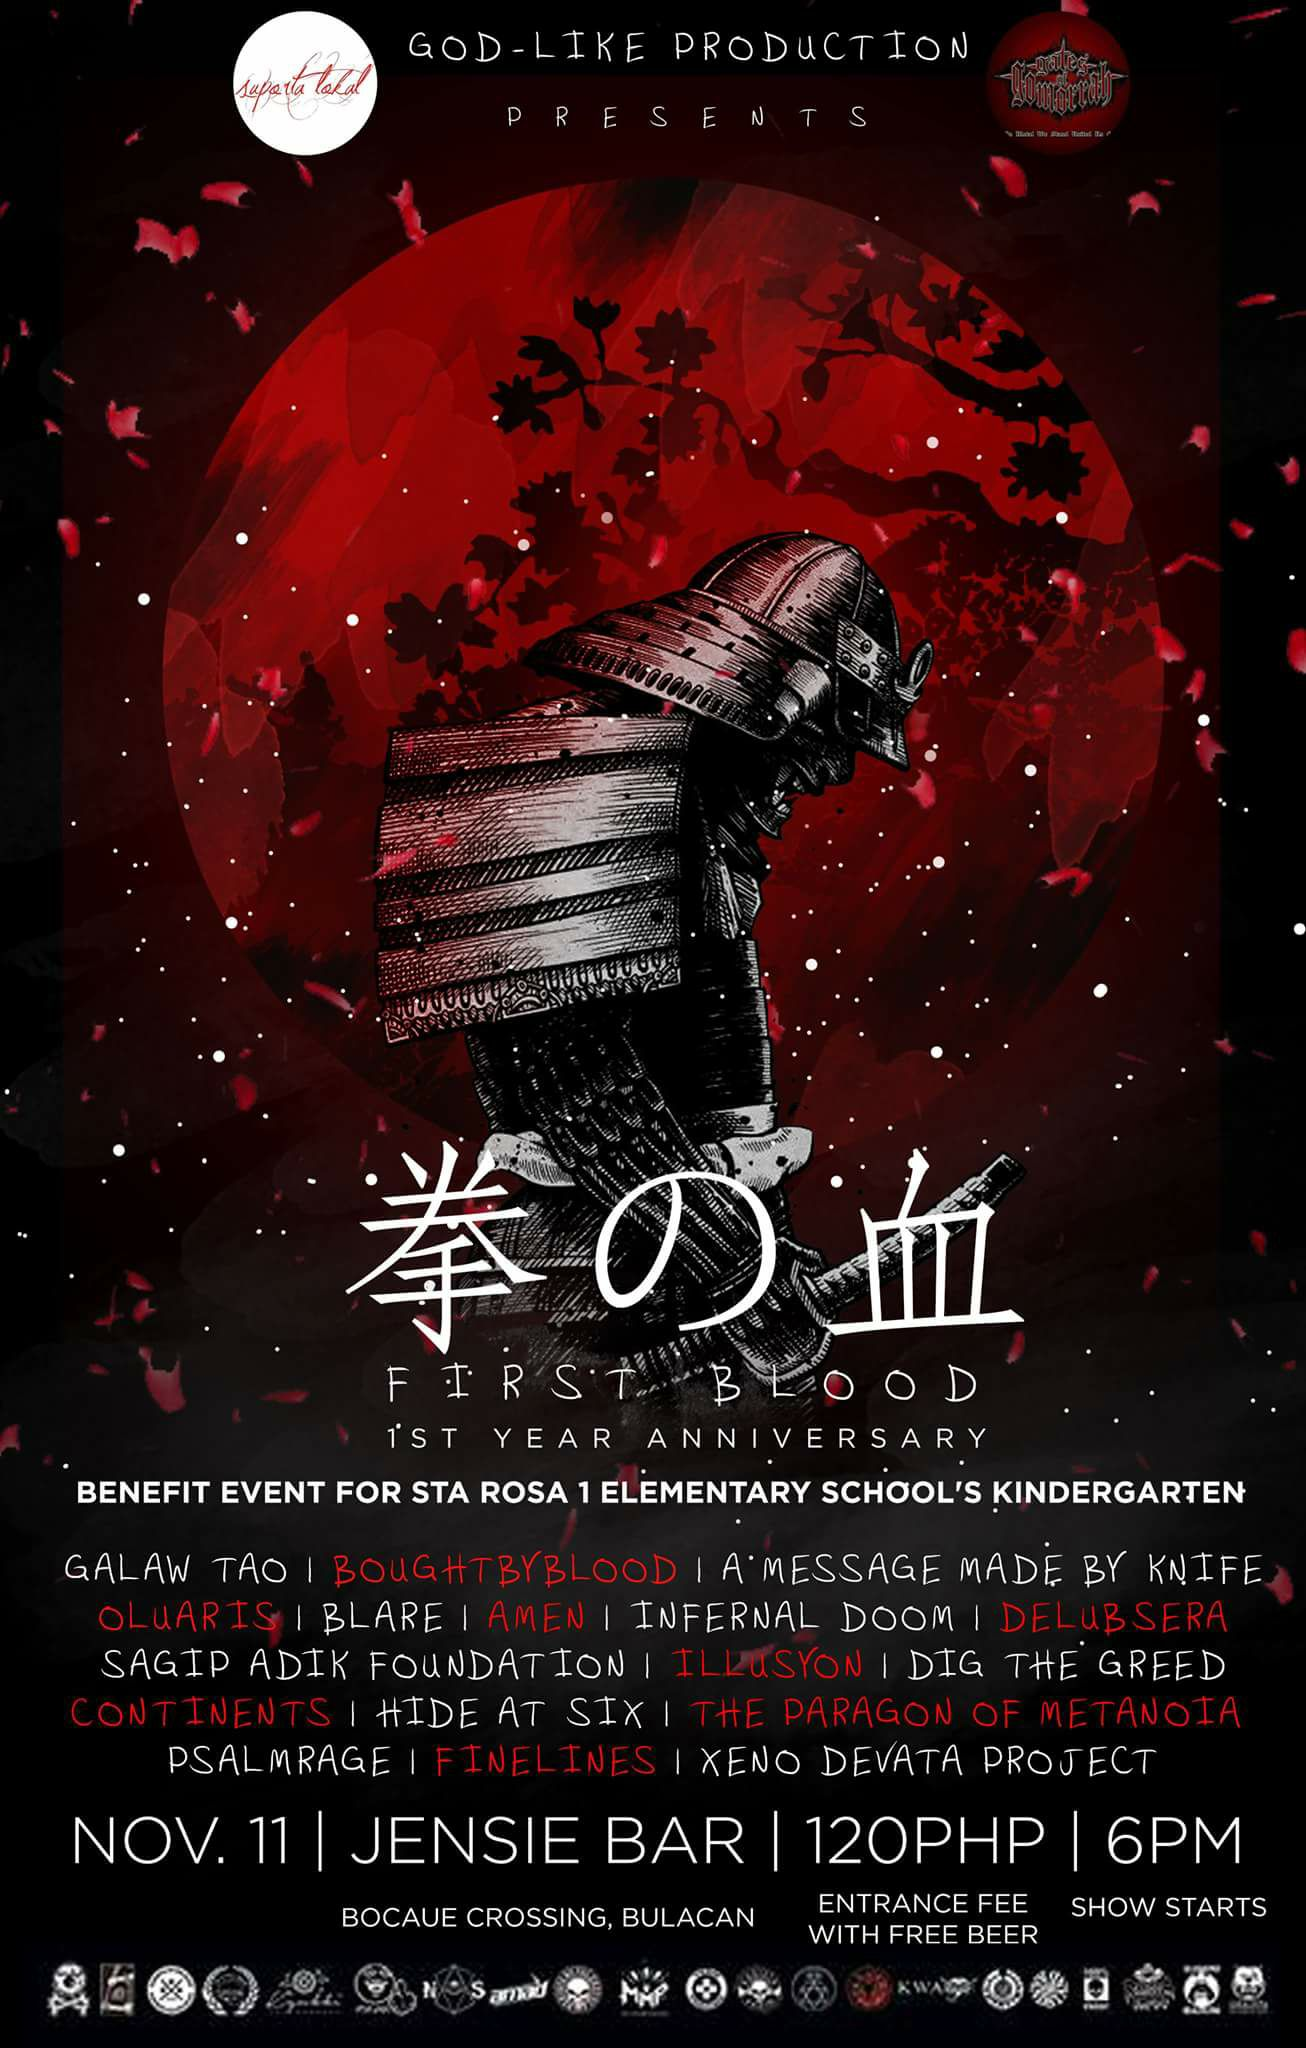 """""""FIRSTBLOOD"""" God-Like Production 1st Year Anniversary"""